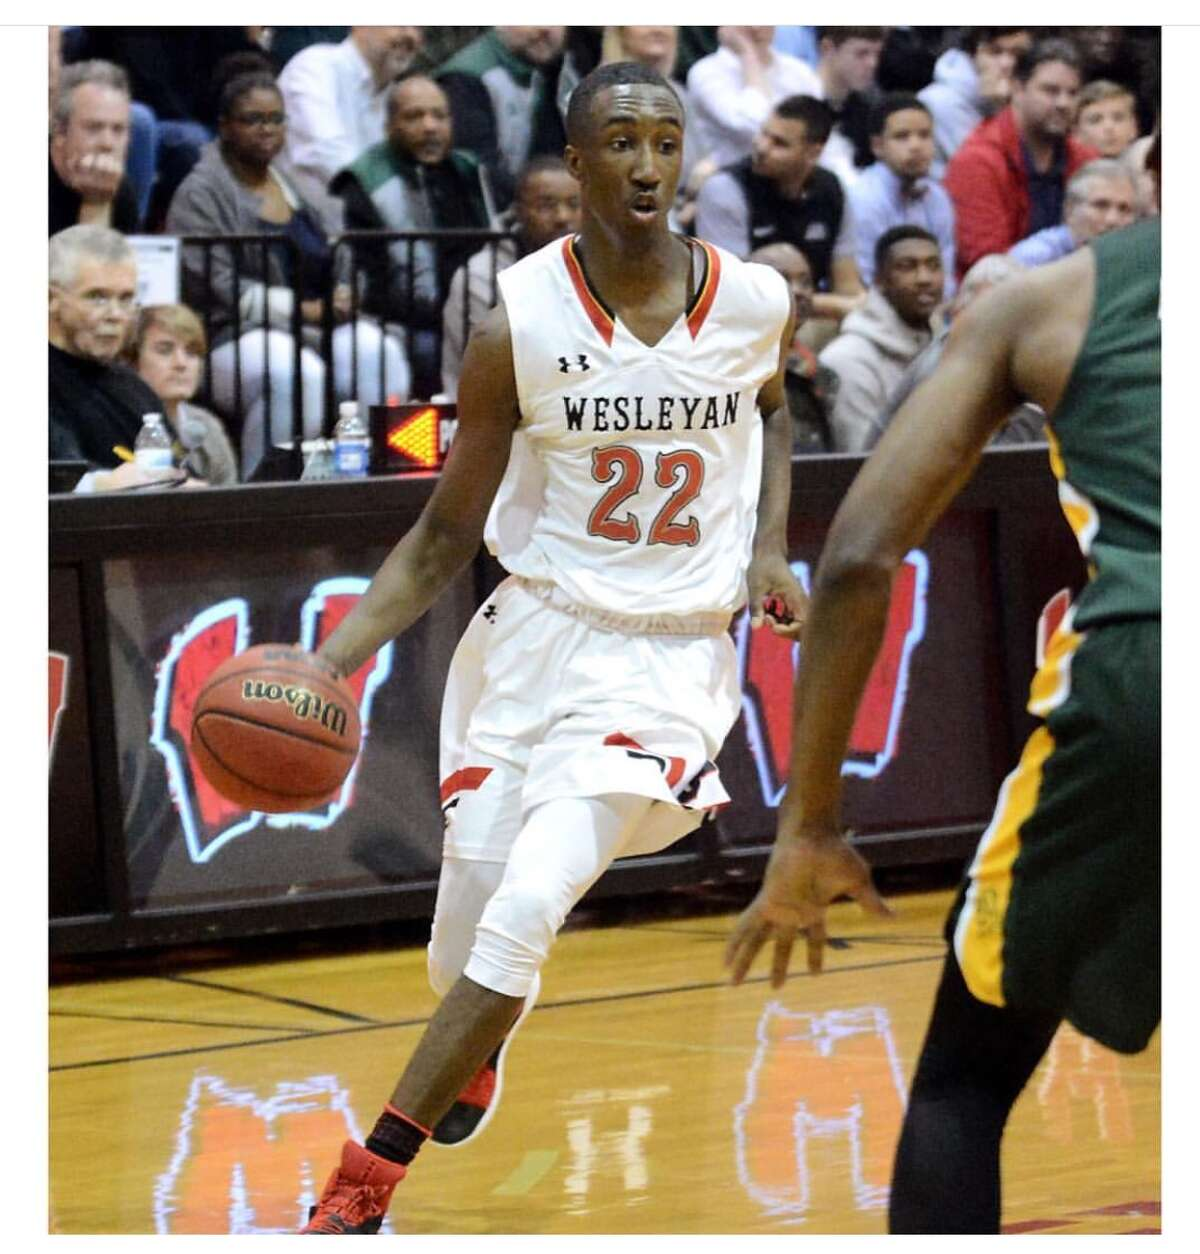 New Siena commit Shawn Walker Jr. played at Wesleyan Christian in North Carolina before transferring to Bishop Sullivan Catholic over the summer. (Courtesy of Shawn Walker Jr.)